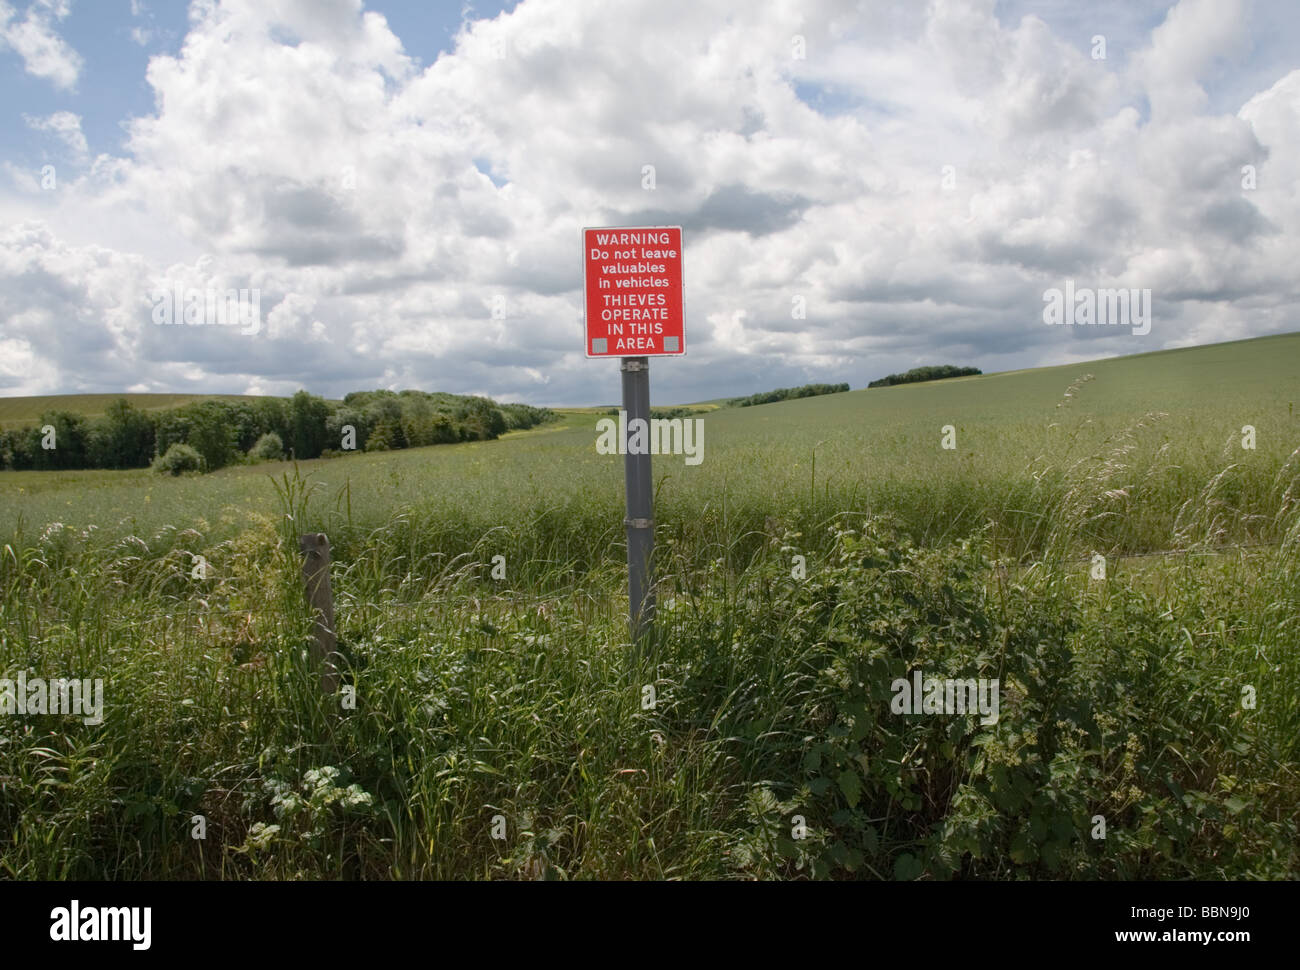 A warning sign against theft from cars in the Wiltshire countryside near Avebury, UK Stock Photo